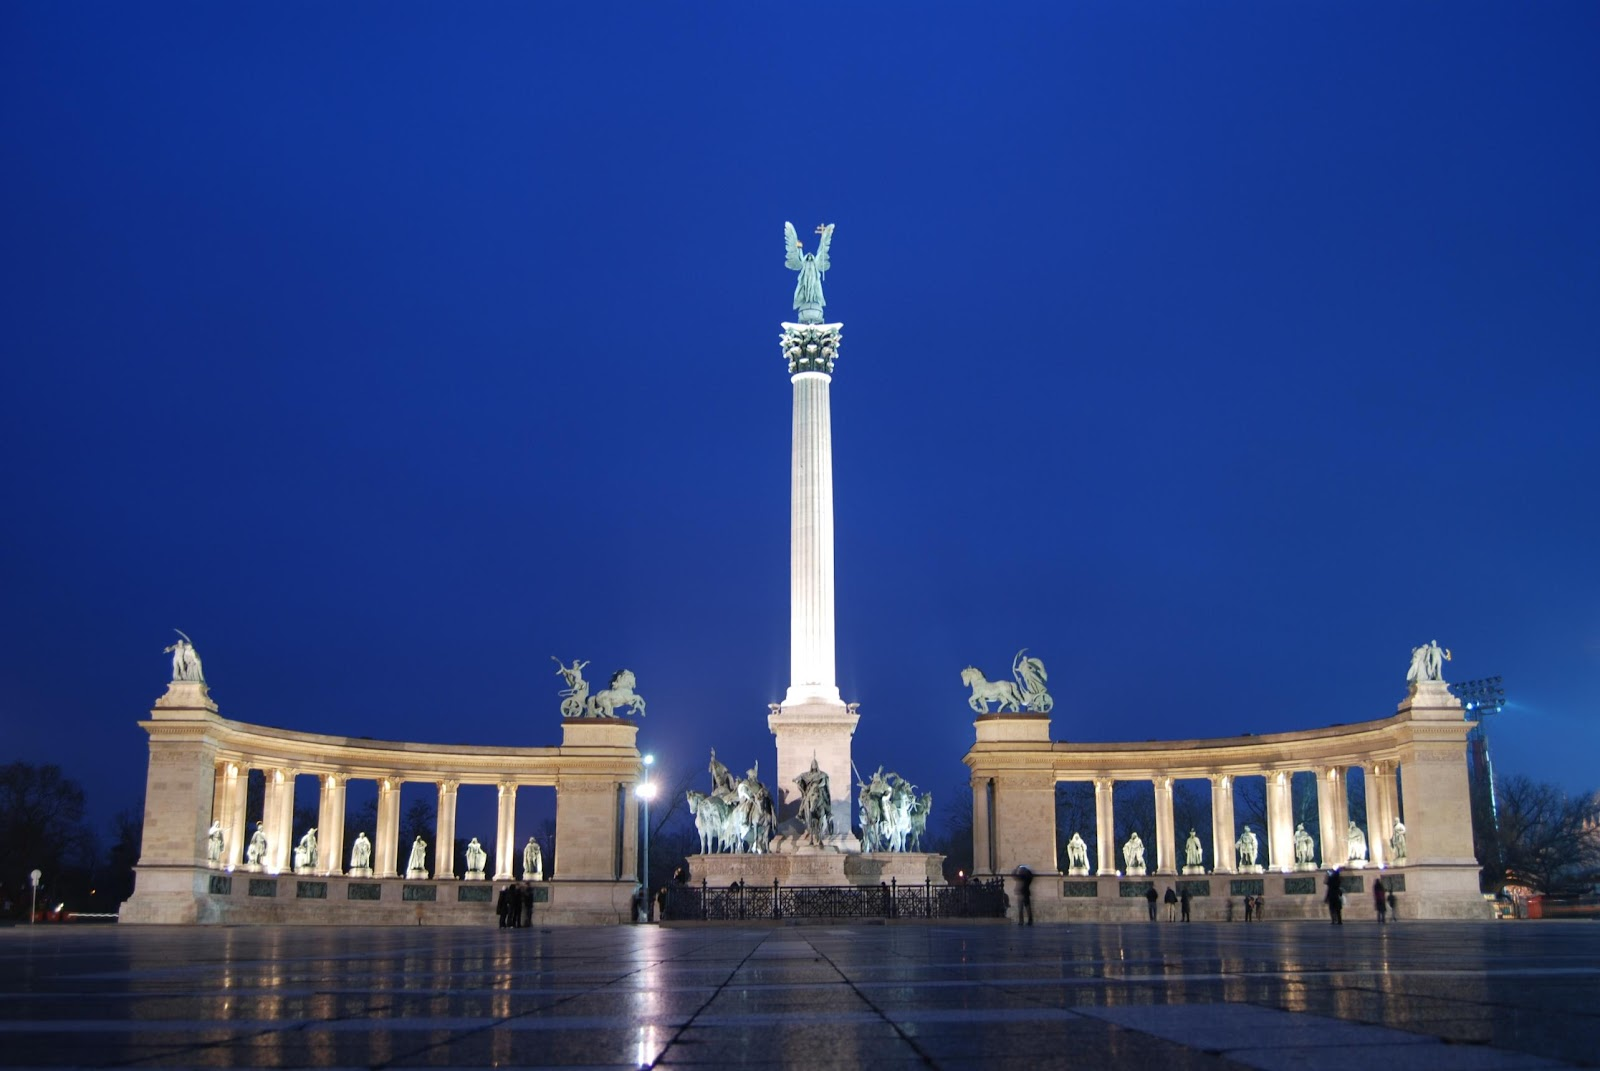 http://upload.wikimedia.org/wikipedia/commons/0/06/The_Millennium_Monument_in_Heroes%27_Square%2C_Budapest%2C_Hungary.jpg